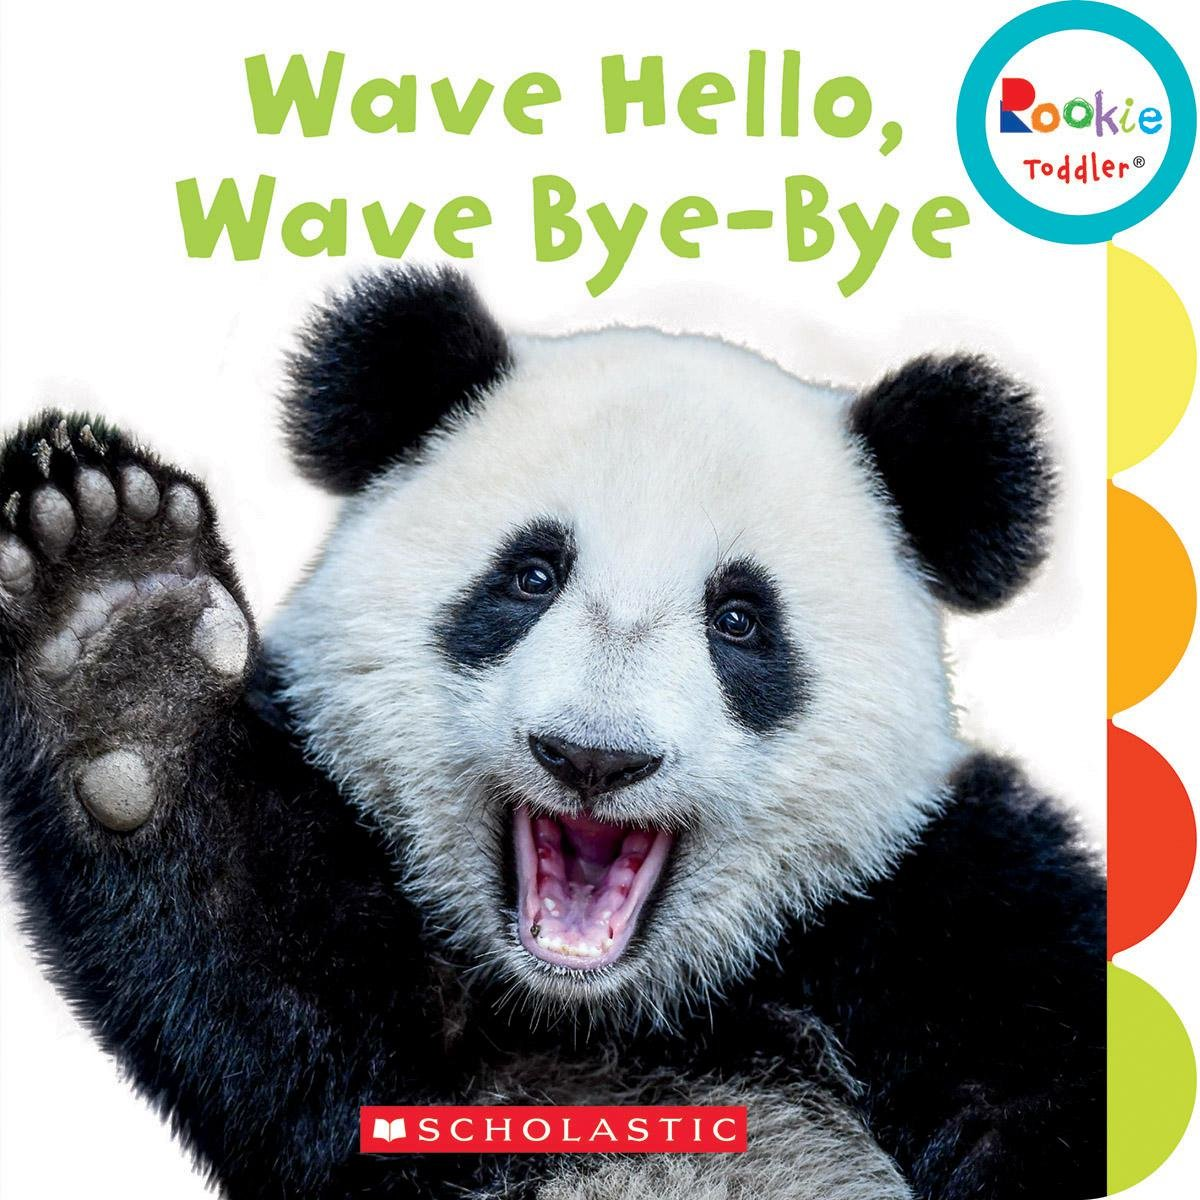 Amazon com: Wave Hello, Wave Bye-bye (Rookie Toddler) (9780531228906